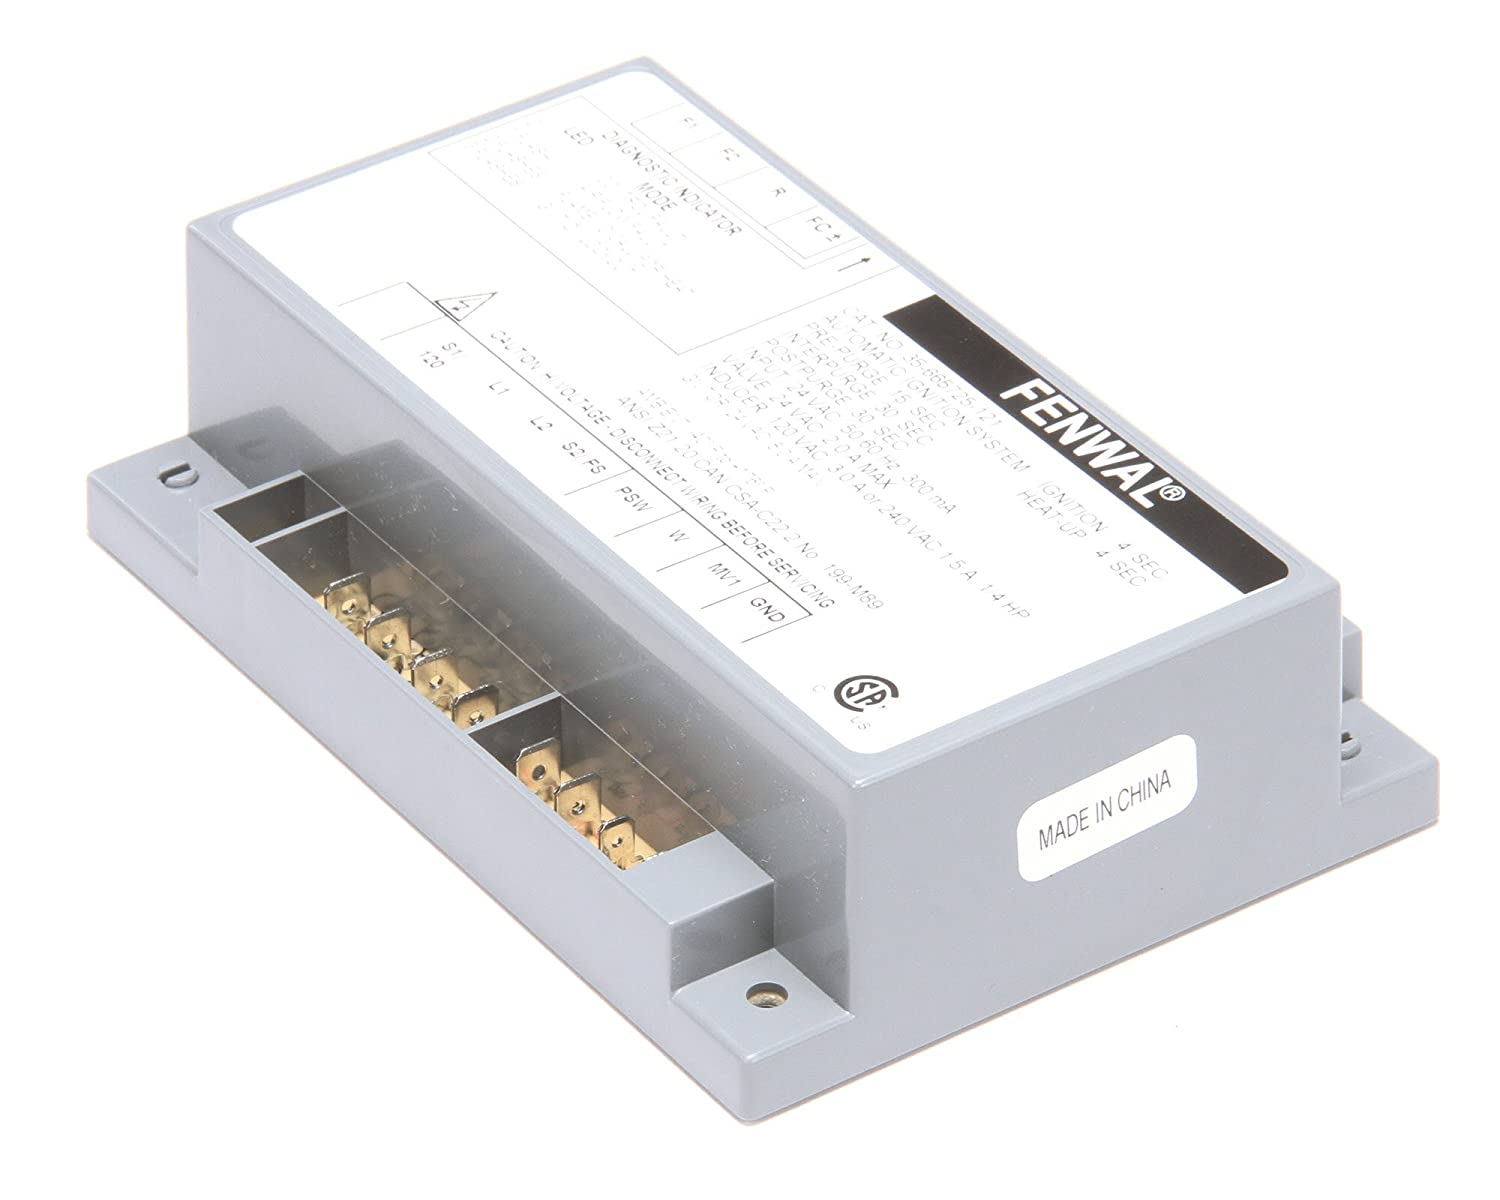 Image of Commercial Cooking Equipment Baxter 01-1000V9-00170 Ignition Control, 3 Tfi, No Reset